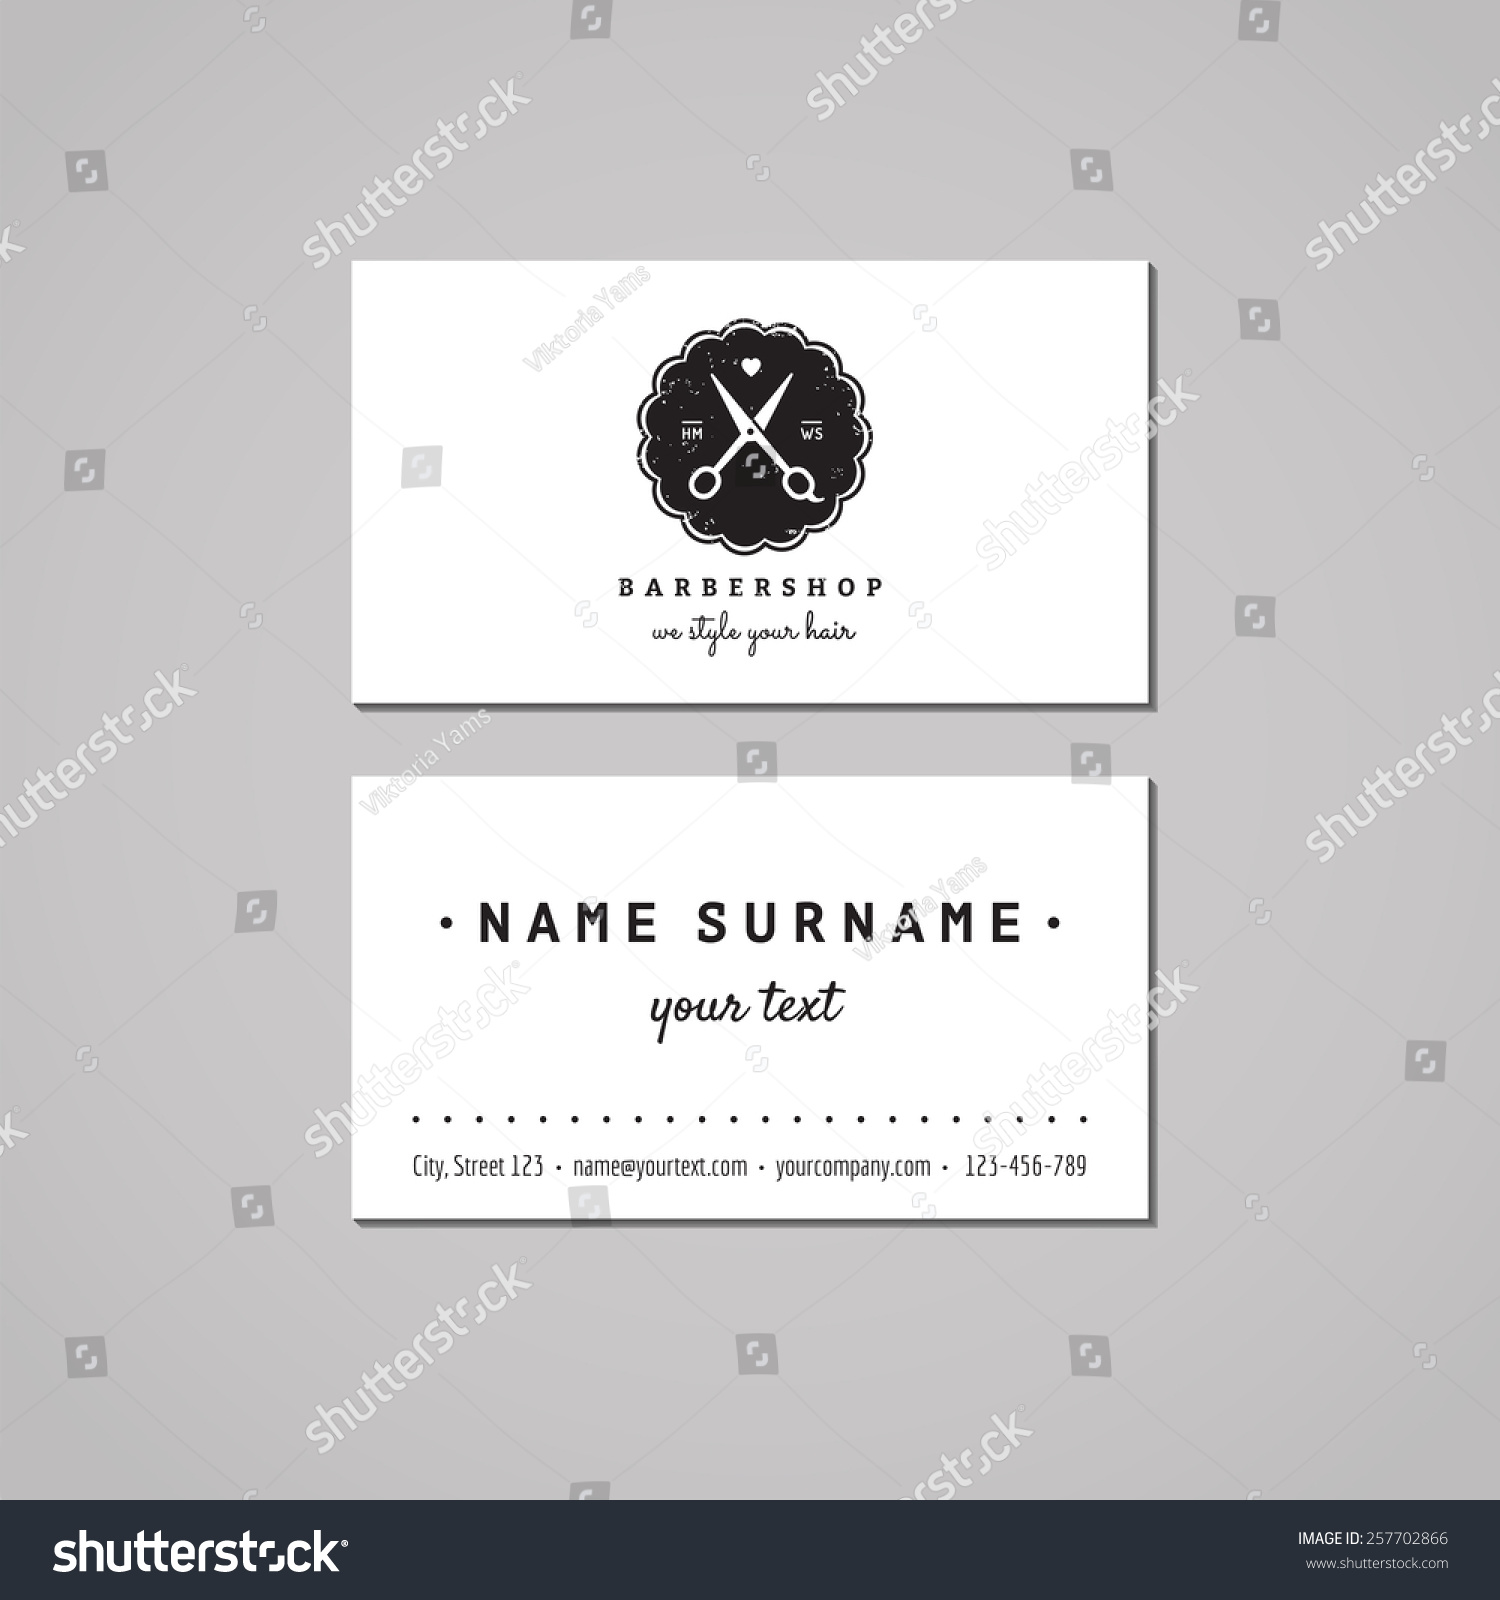 Business Card Logos Free Images - Free Business Cards